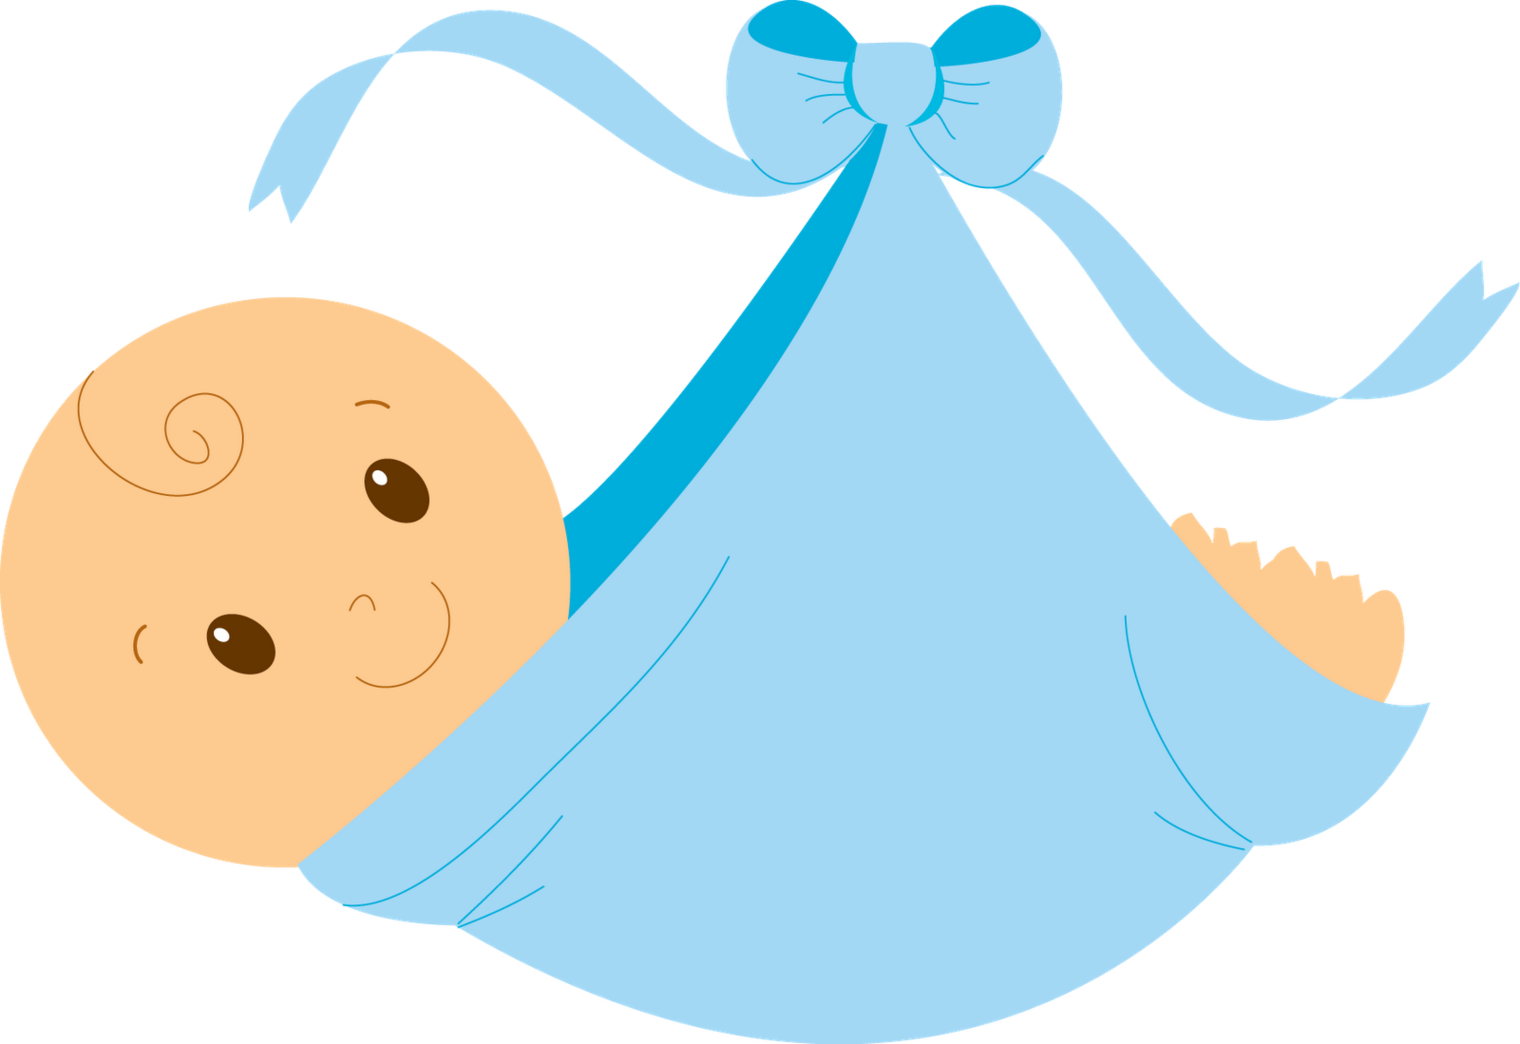 Free clipart for baby showers clipart freeuse library Clipart for baby shower invitations free - ClipartFest clipart freeuse library